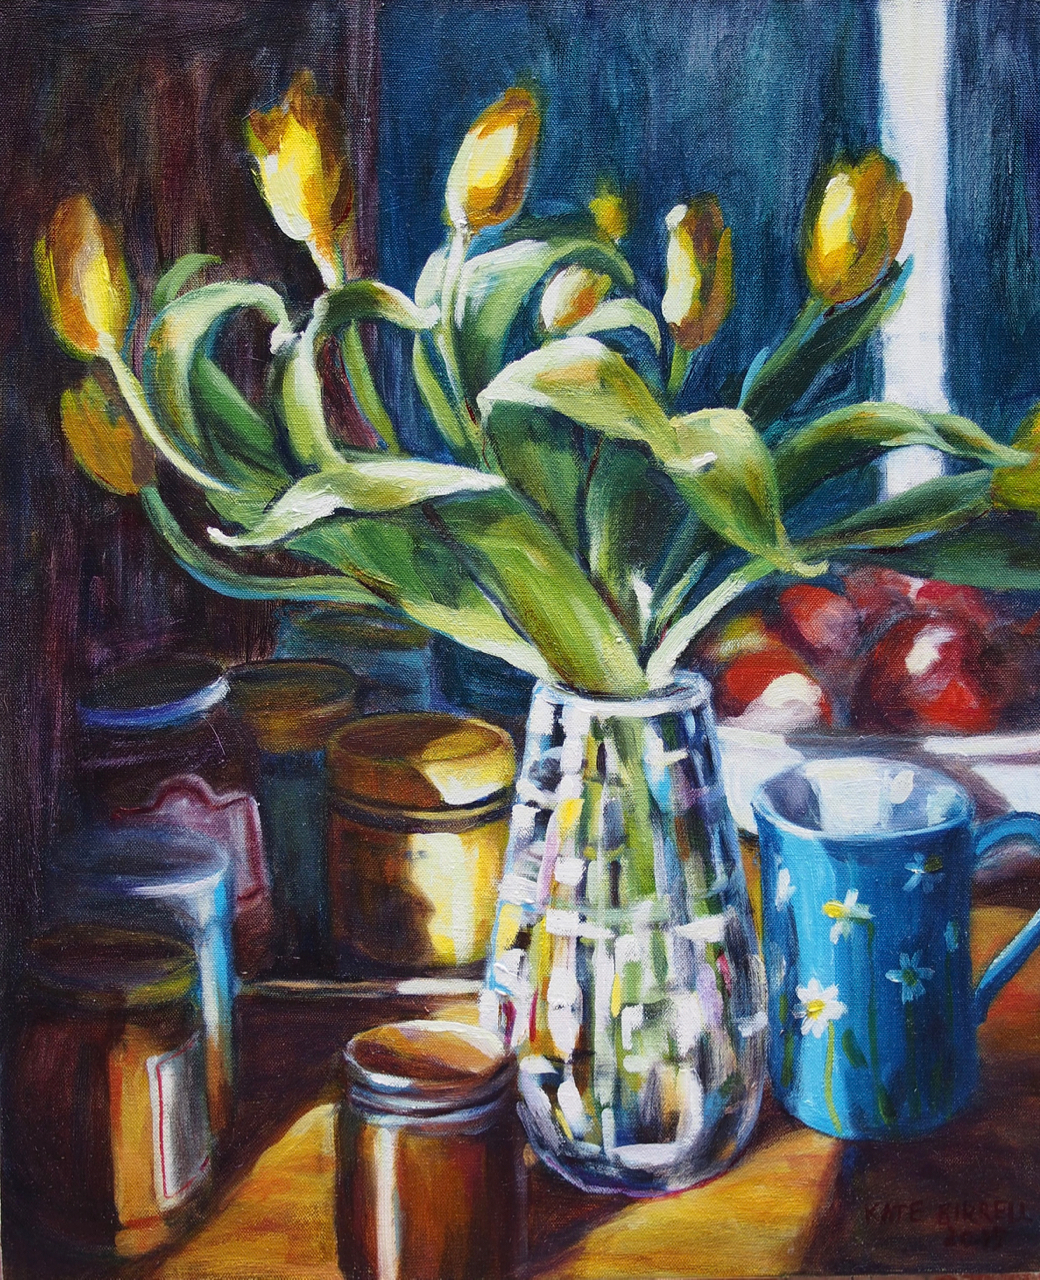 Tulips in the Wedgewood Vase, Blue Mug and Other Jars and Things